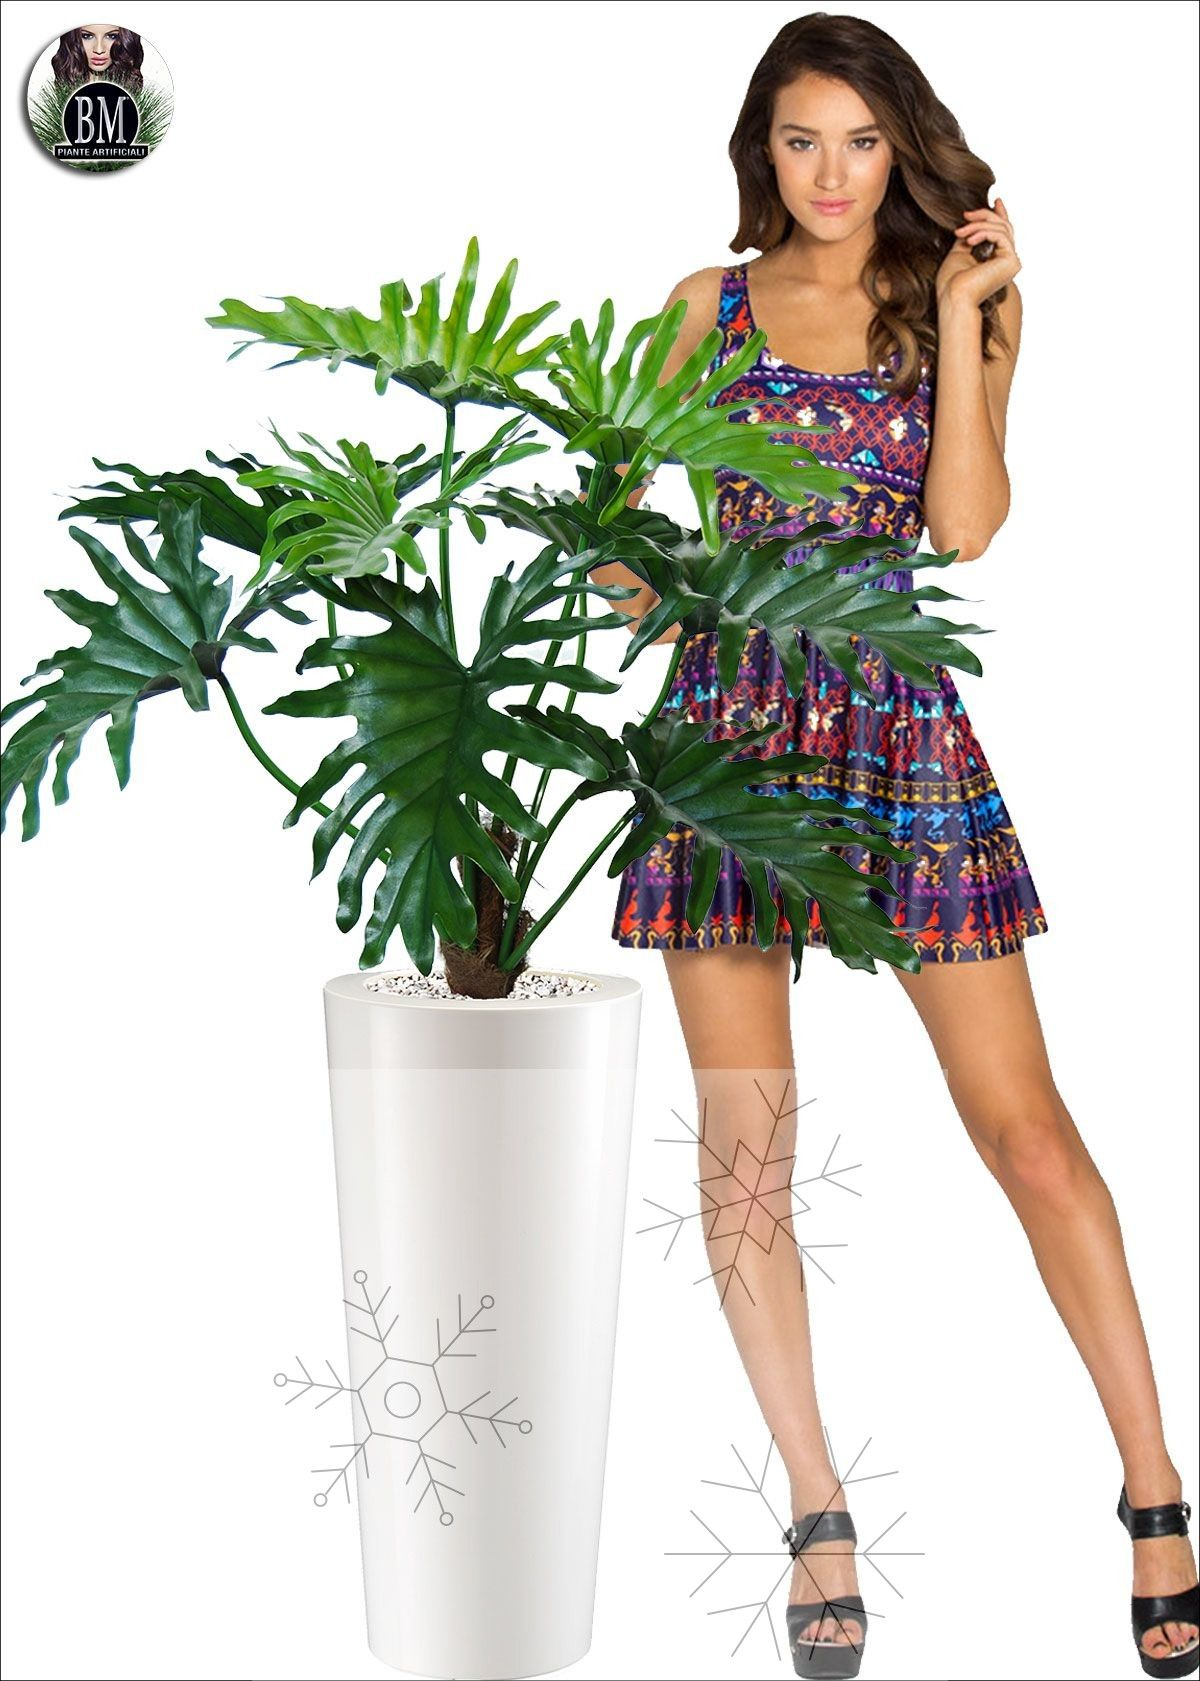 Marvelous Useful Tips Artificial Plants Outdoor Planters artificial